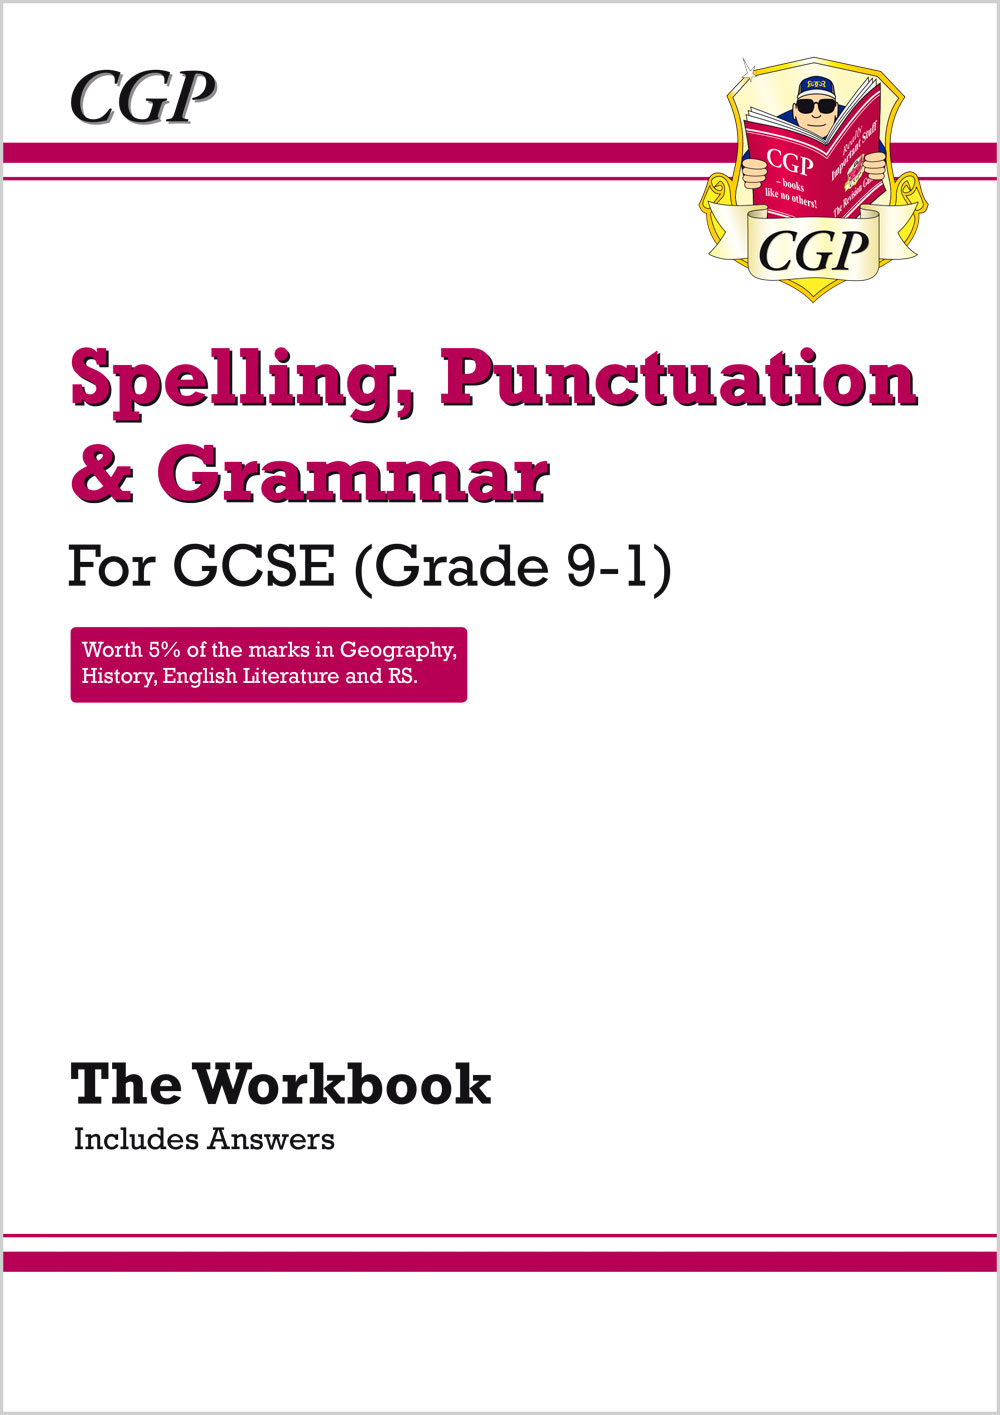 Spelling, Punctuation and Grammar for Grade 9-1 GCSE Workbook (includes  Answers)